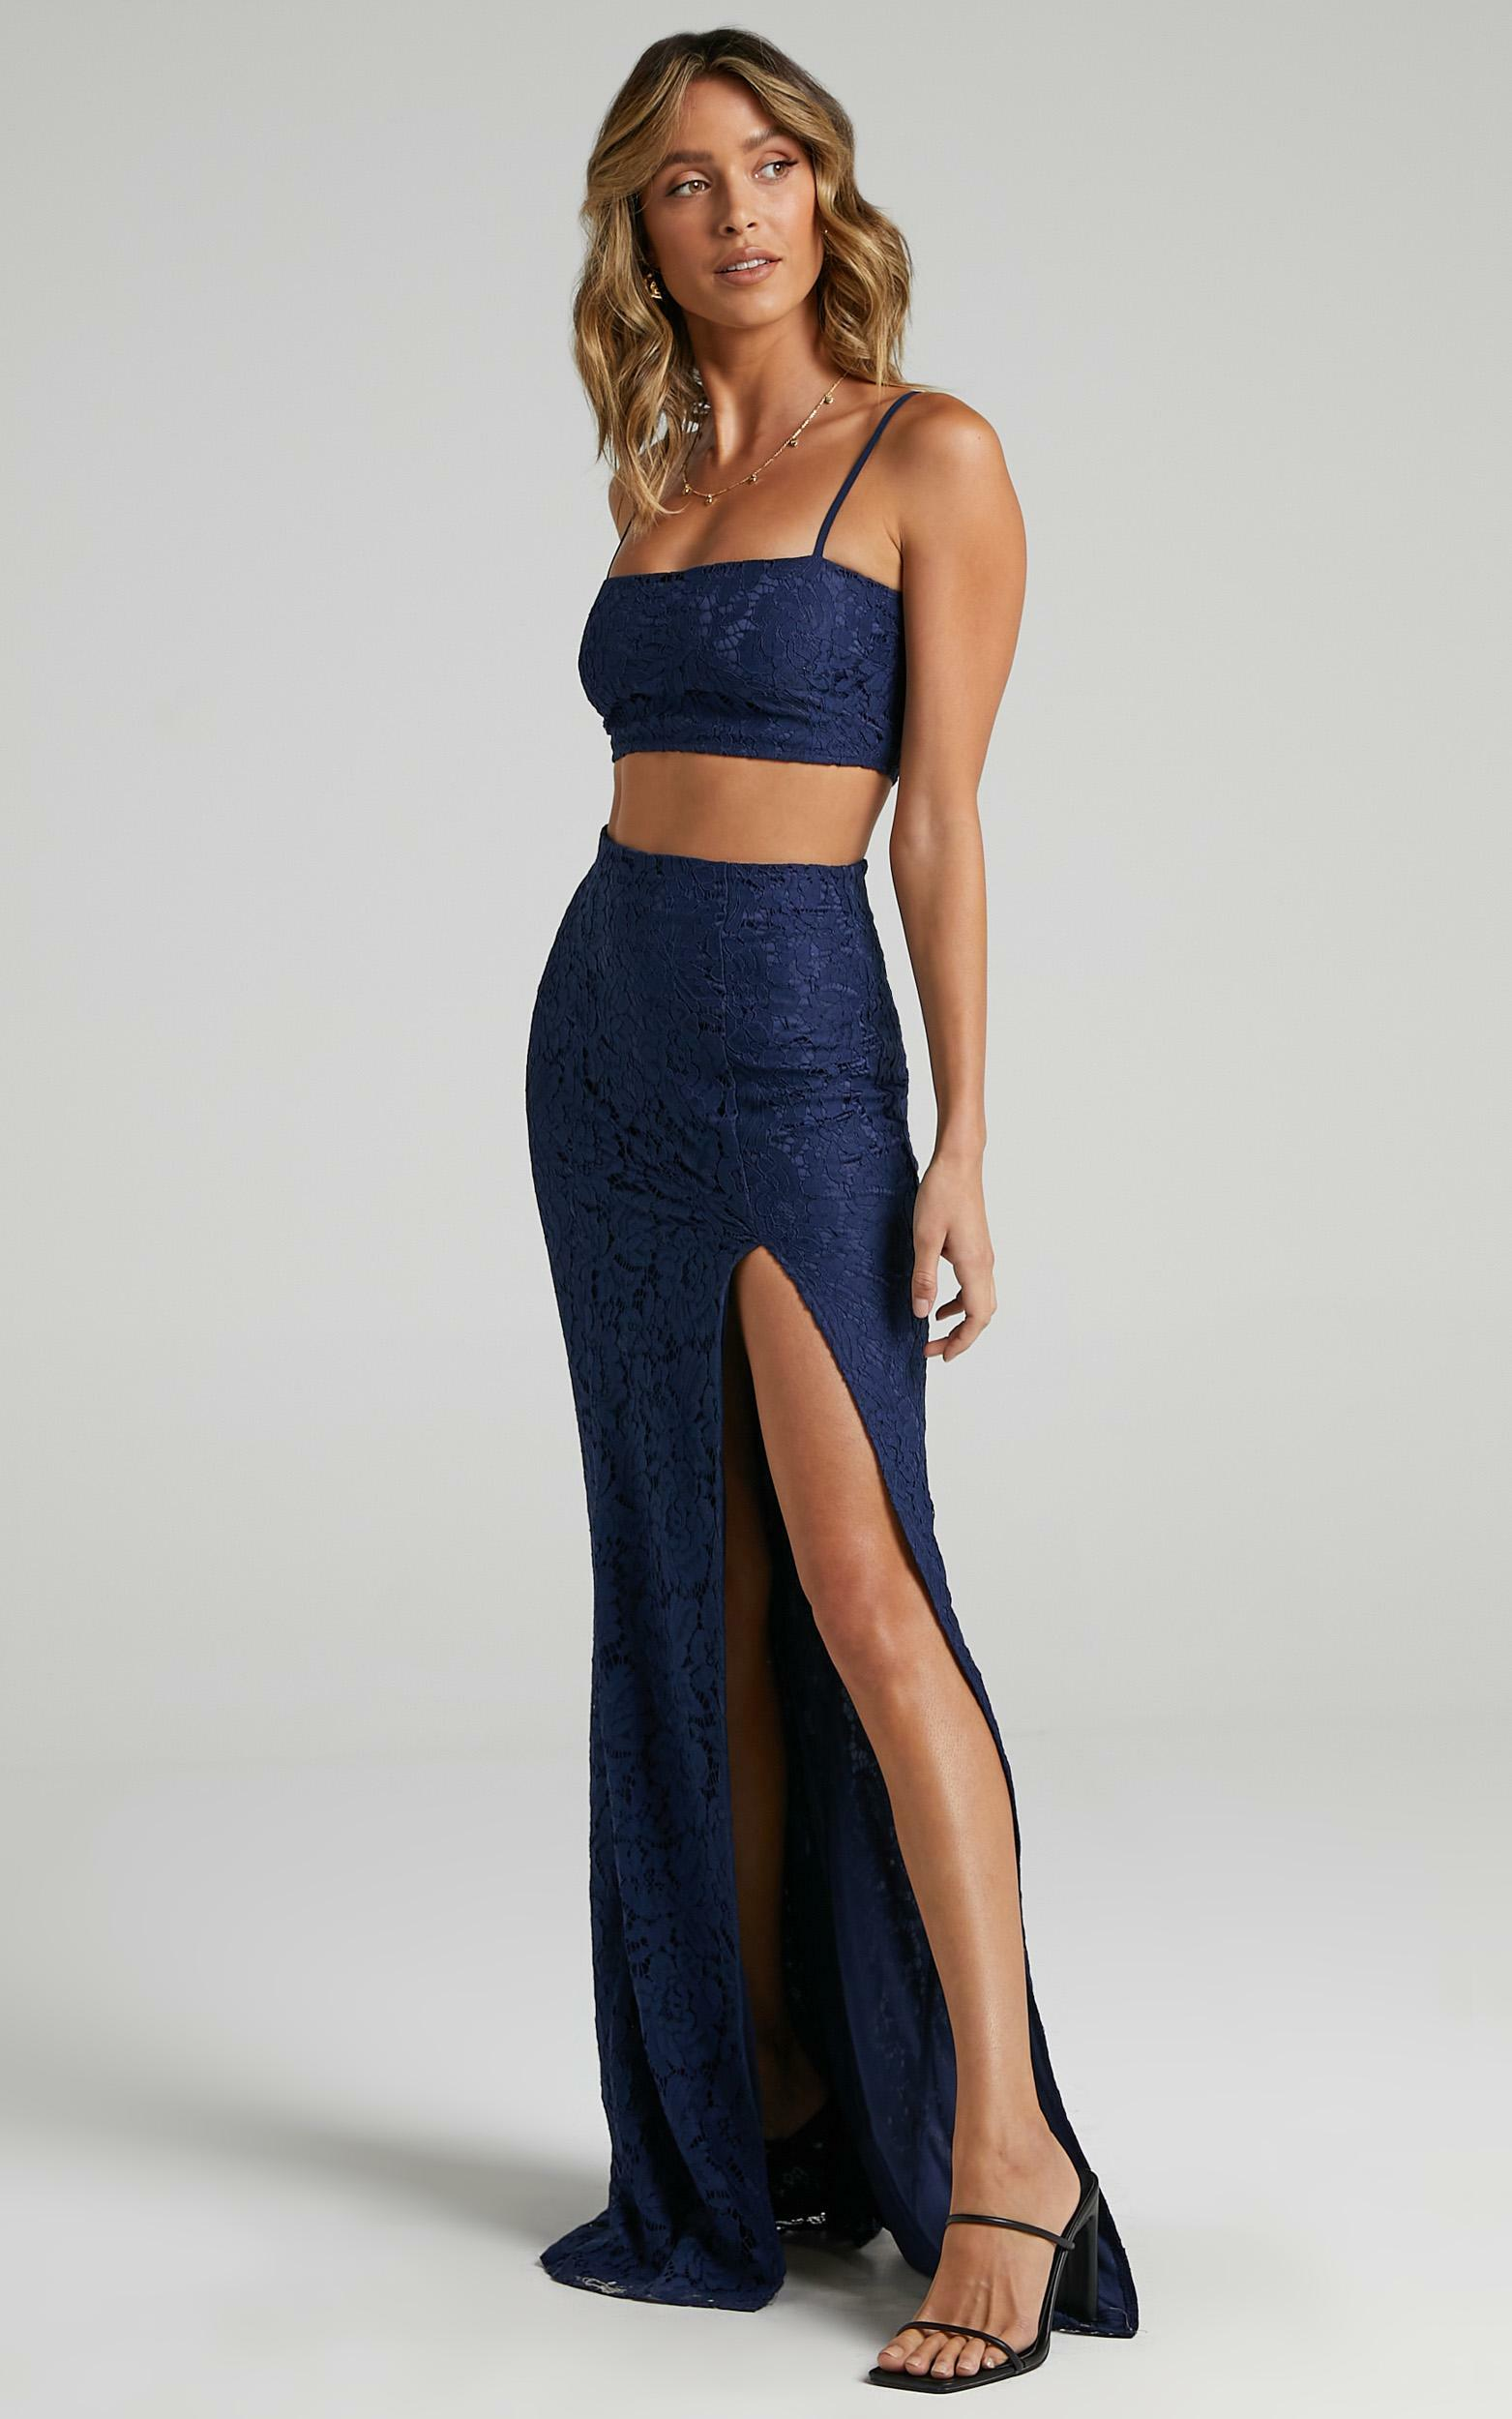 Tylah Two Piece Set in Navy Lace - 06, NVY1, hi-res image number null